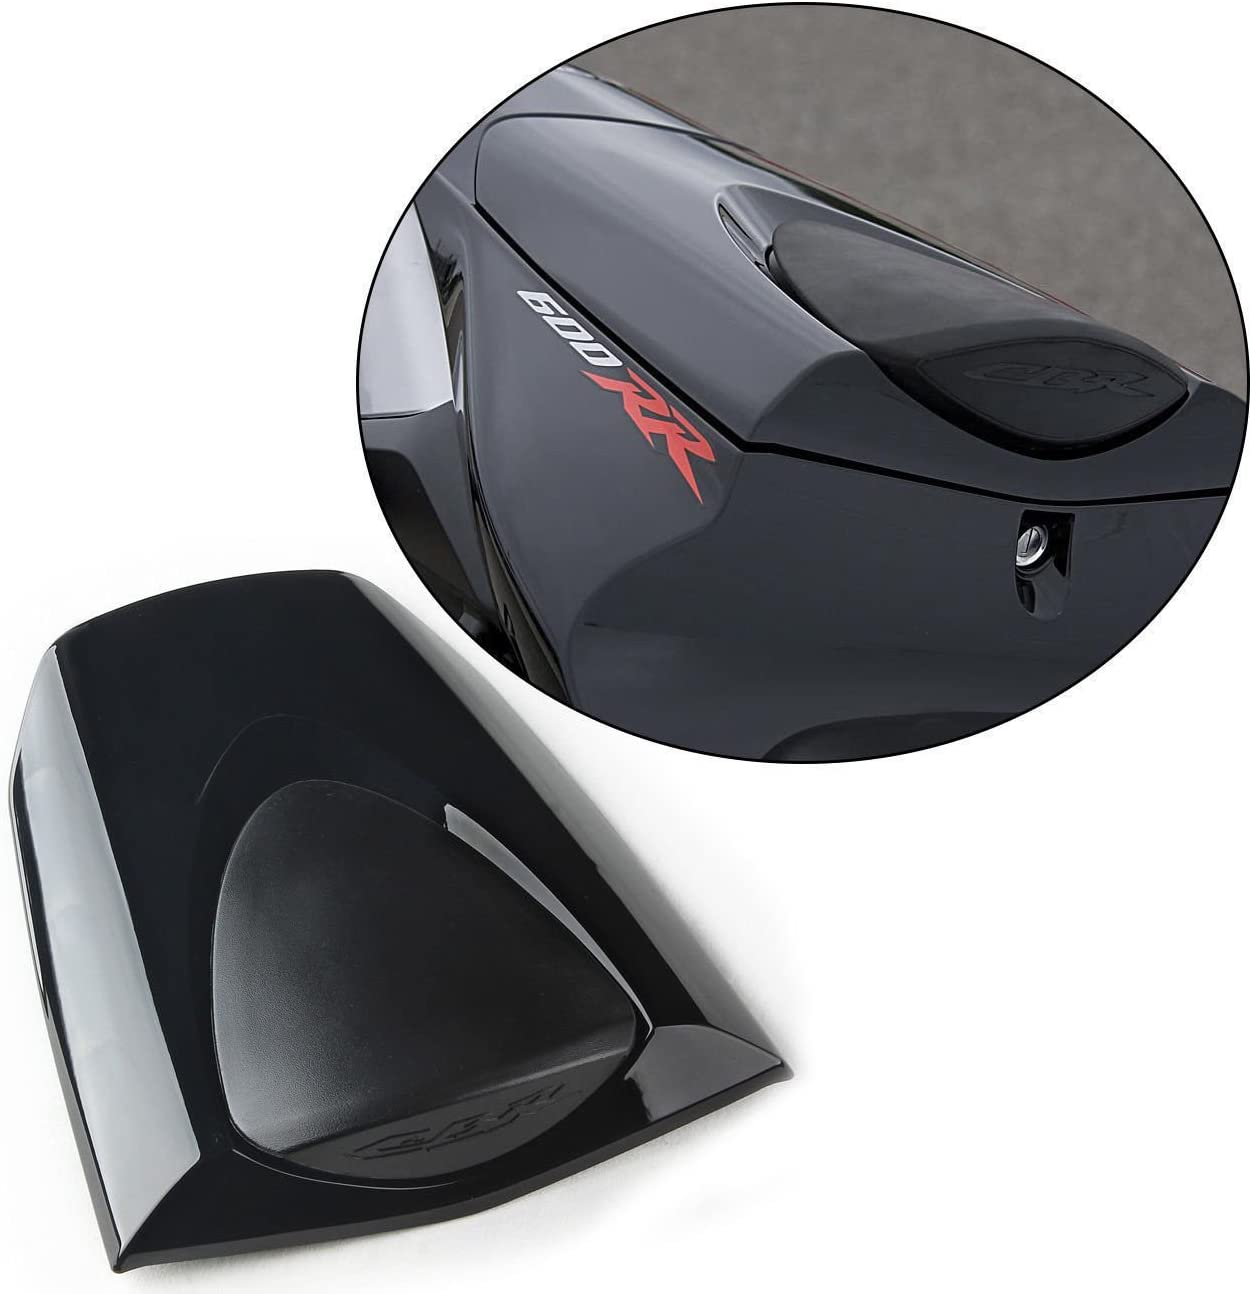 Motorcycles Black Tail Rear Popular brand Seat Cover Plastic Weekly update Cowl Fairing ABS